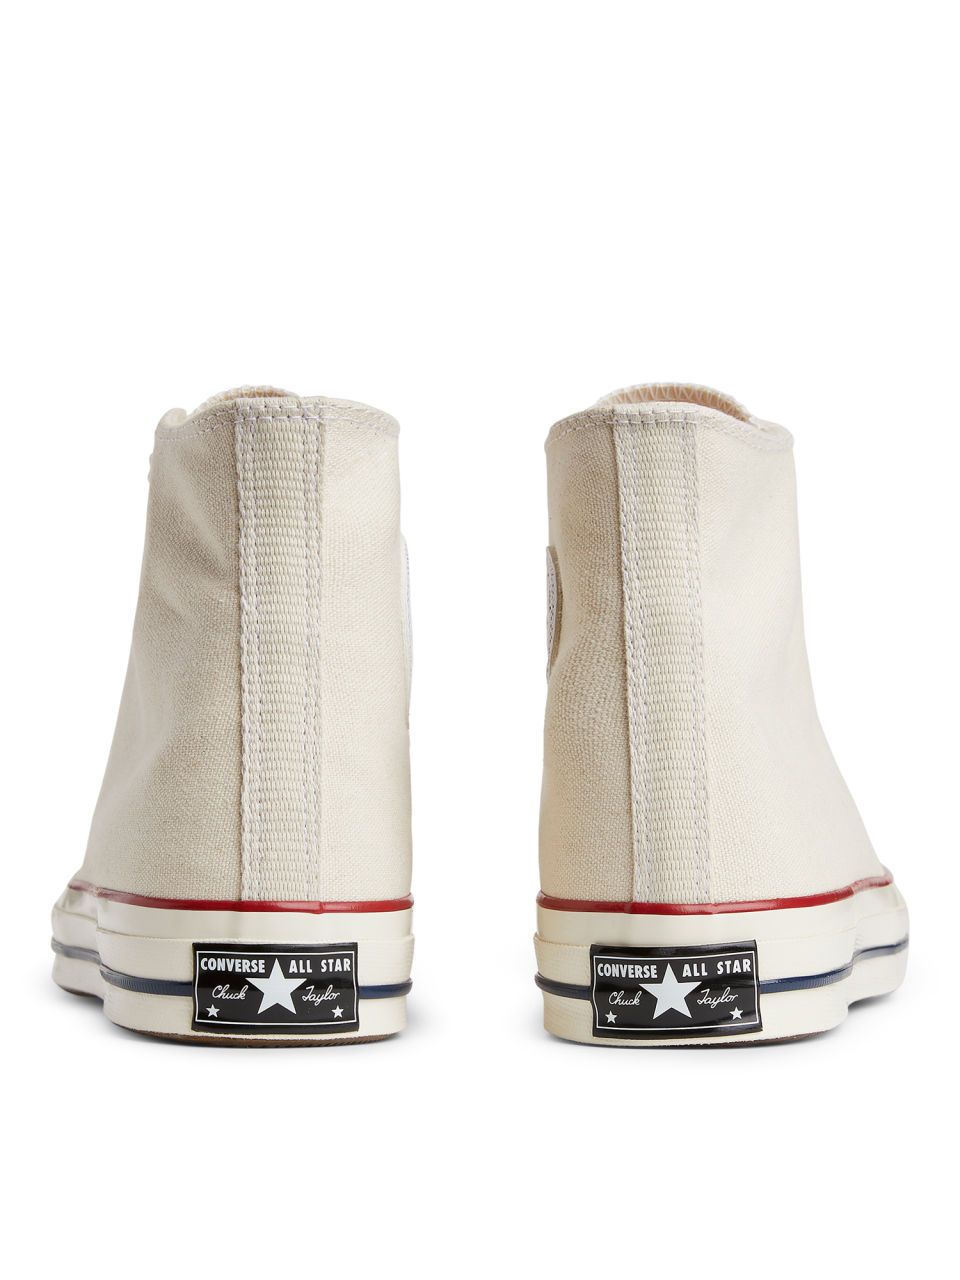 release date 5fda2 be162 ... Side image of Arket converse chuck taylor all star 70 in white ...